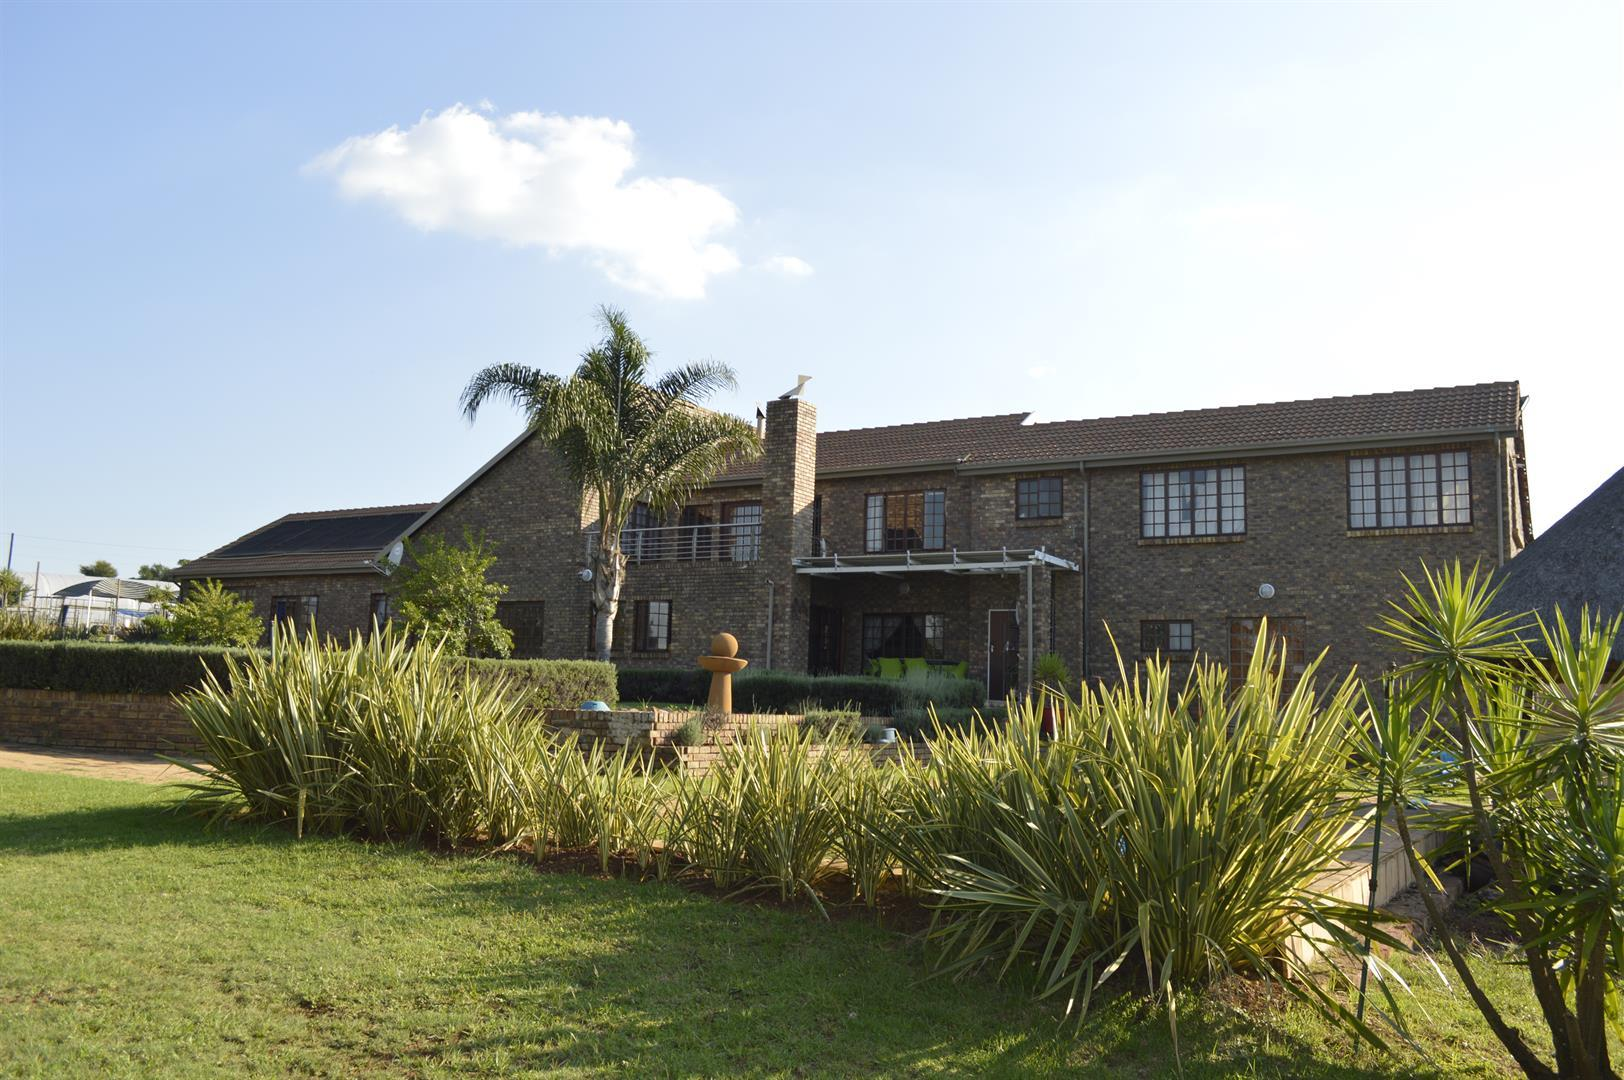 Raslouw A H property for sale. Ref No: 13442161. Picture no 1